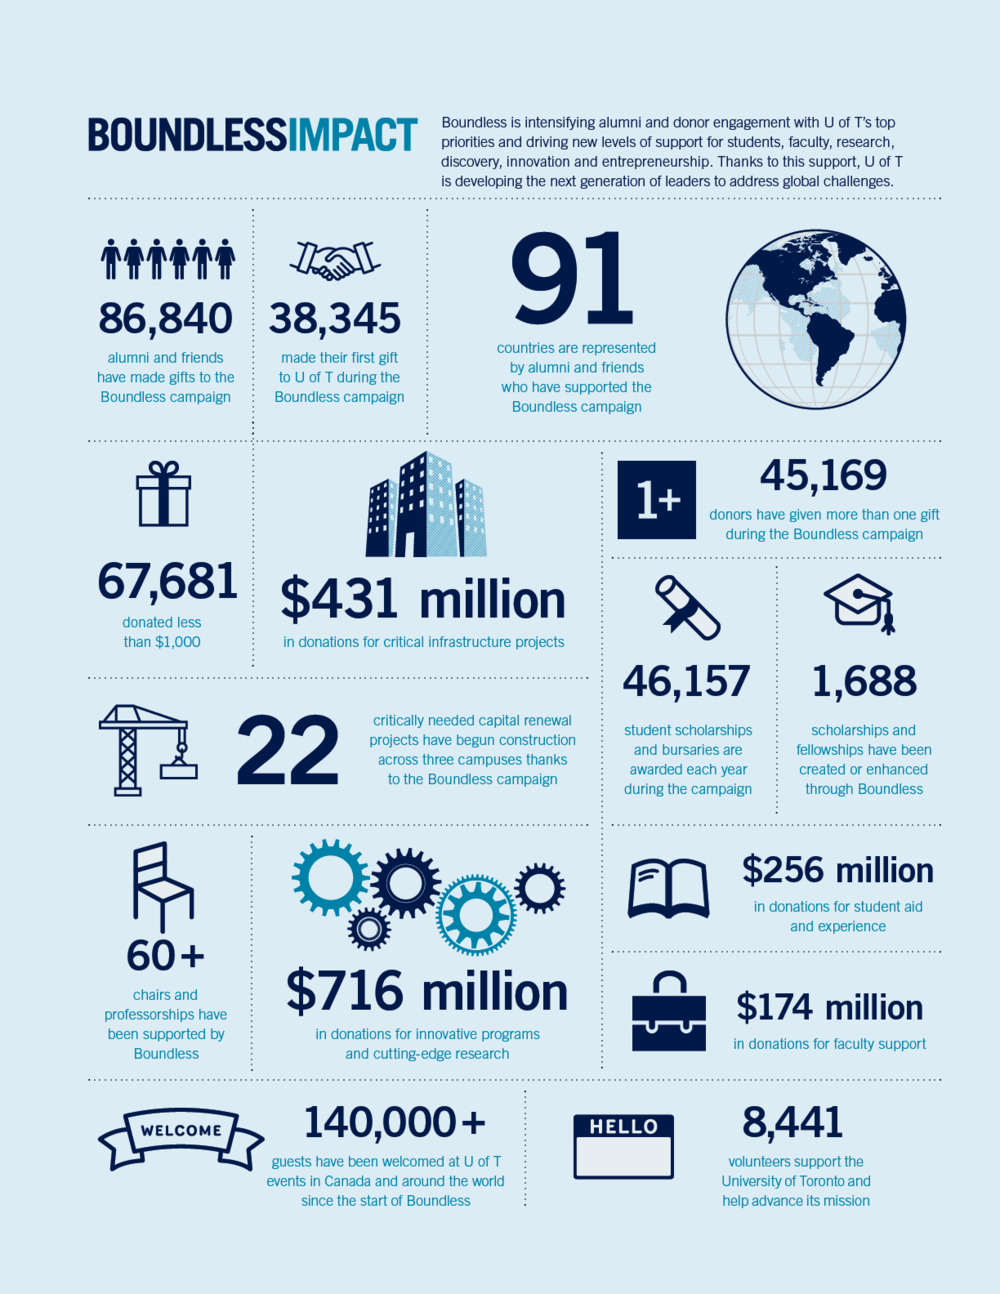 Info graphic used in booklets for Boundless Campaign